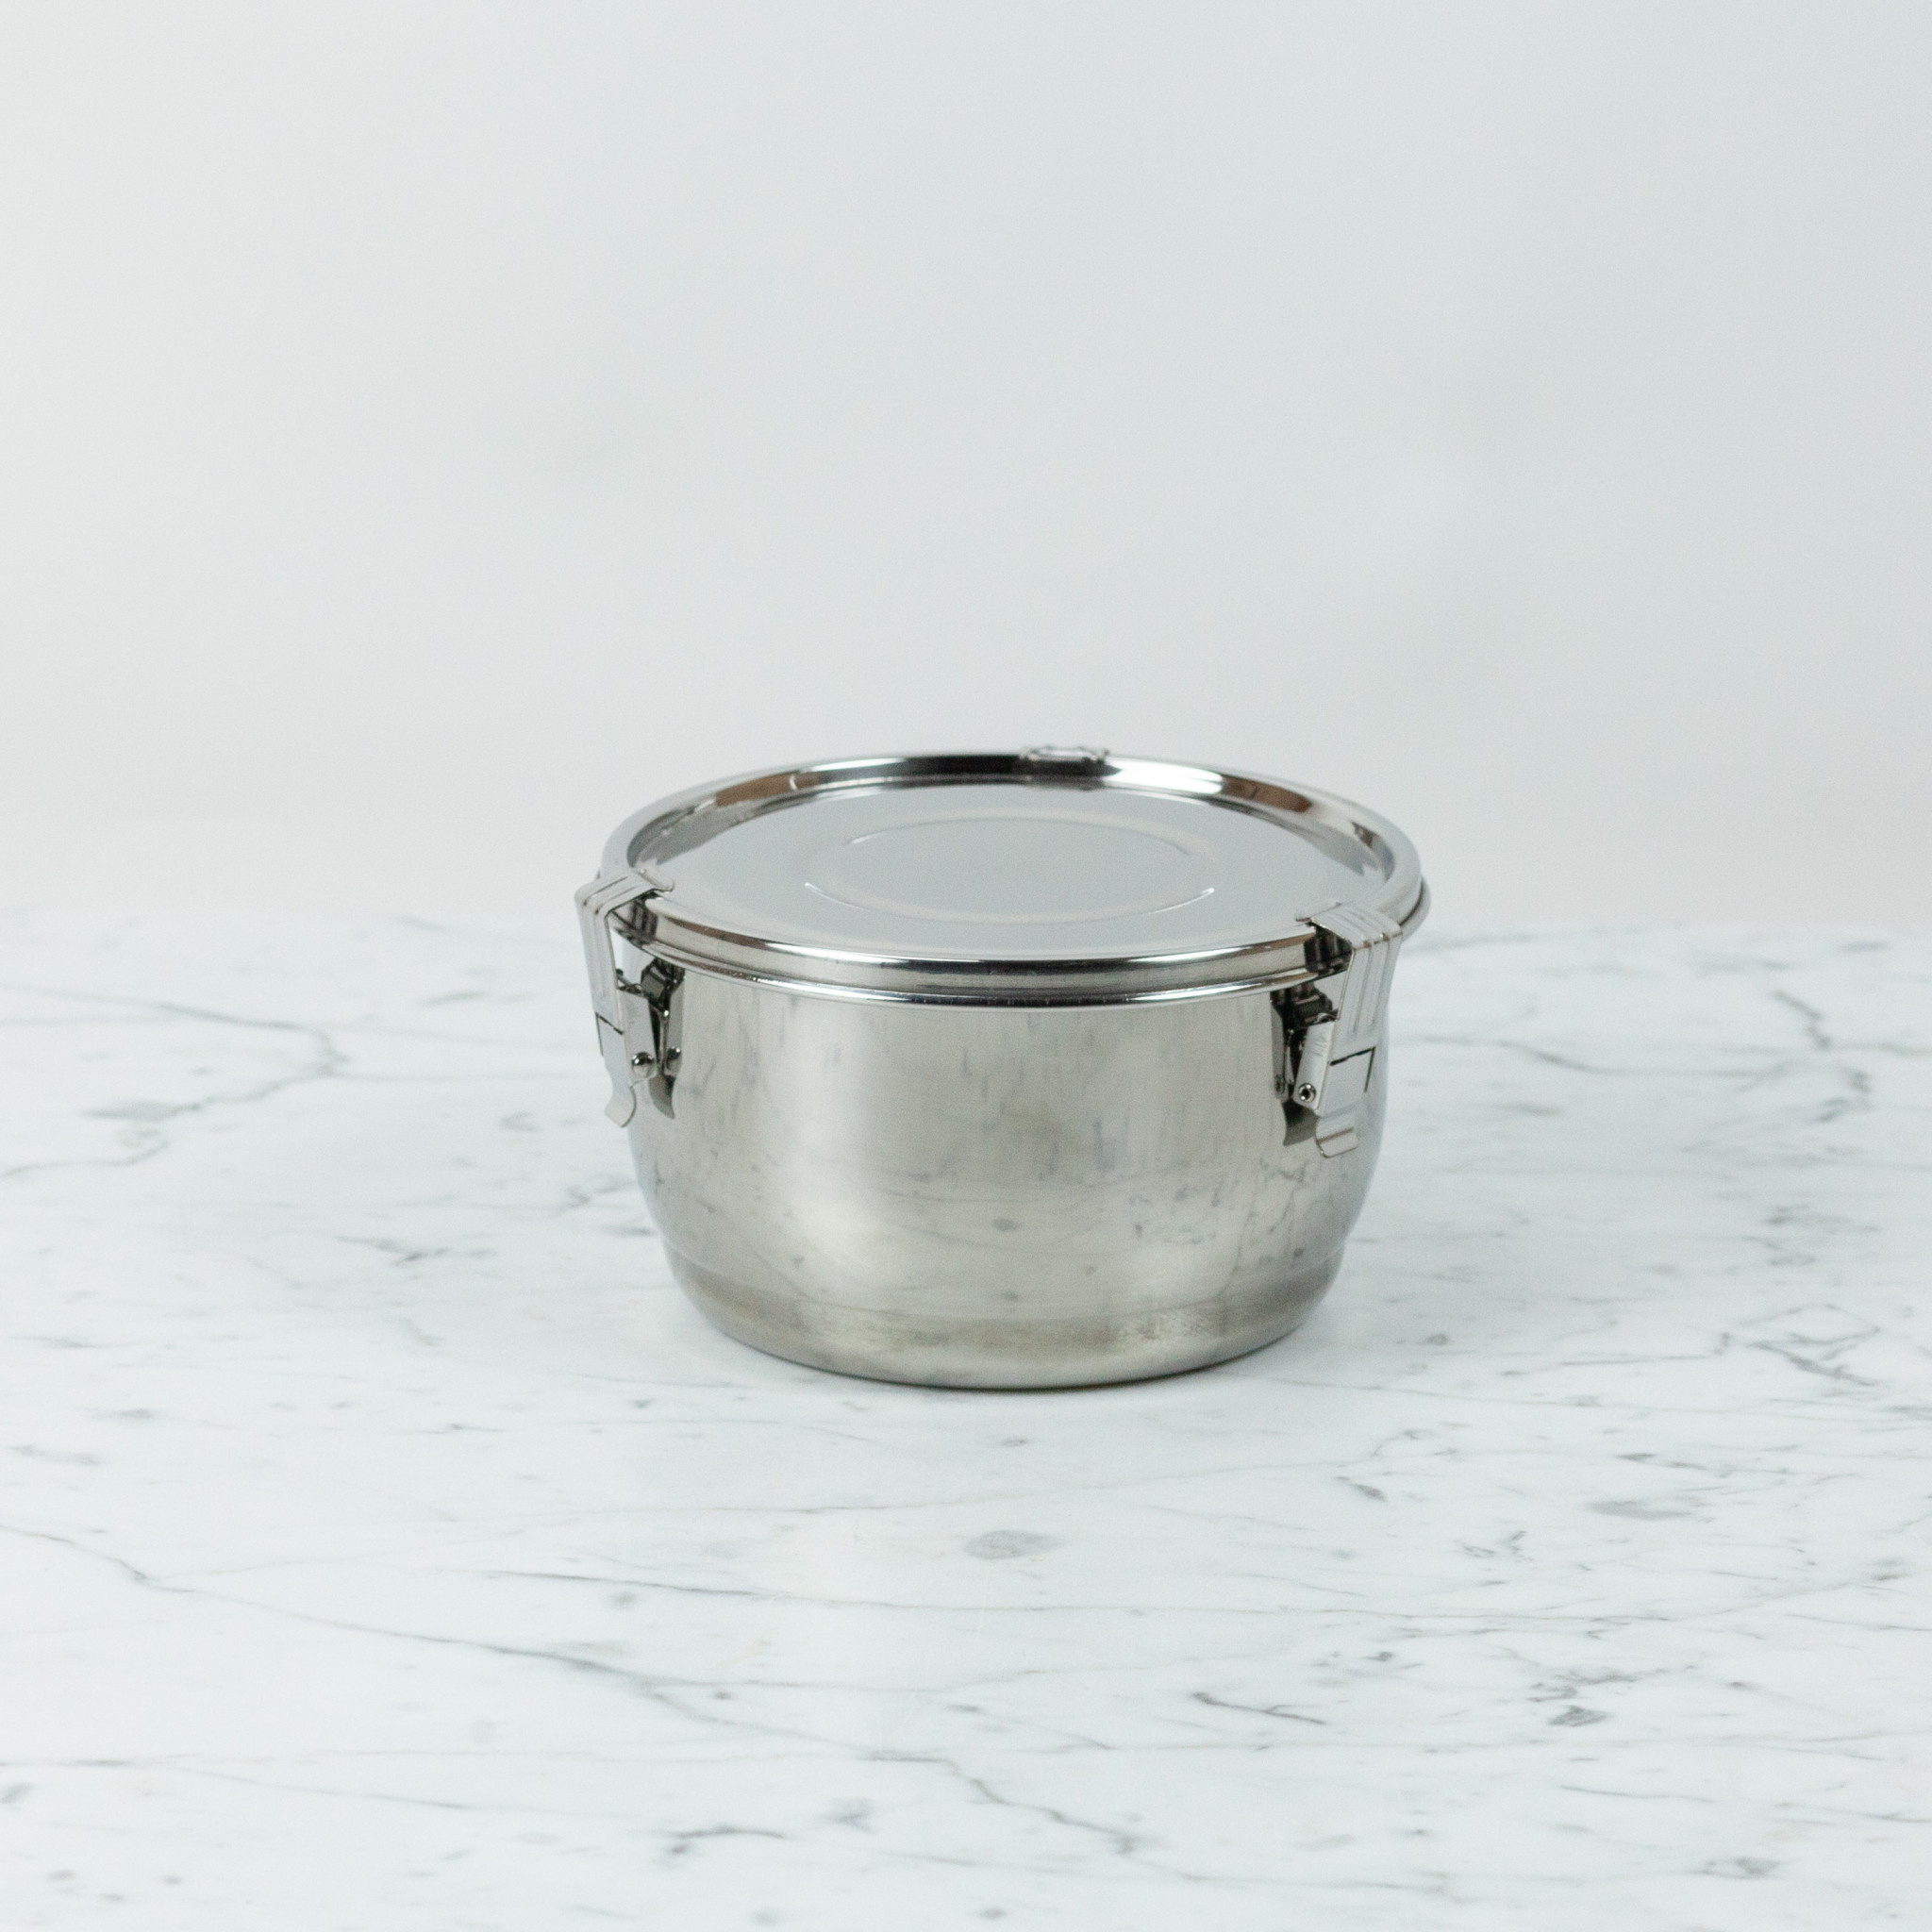 Stainless Steel Airtight Storage Container - 5.5""